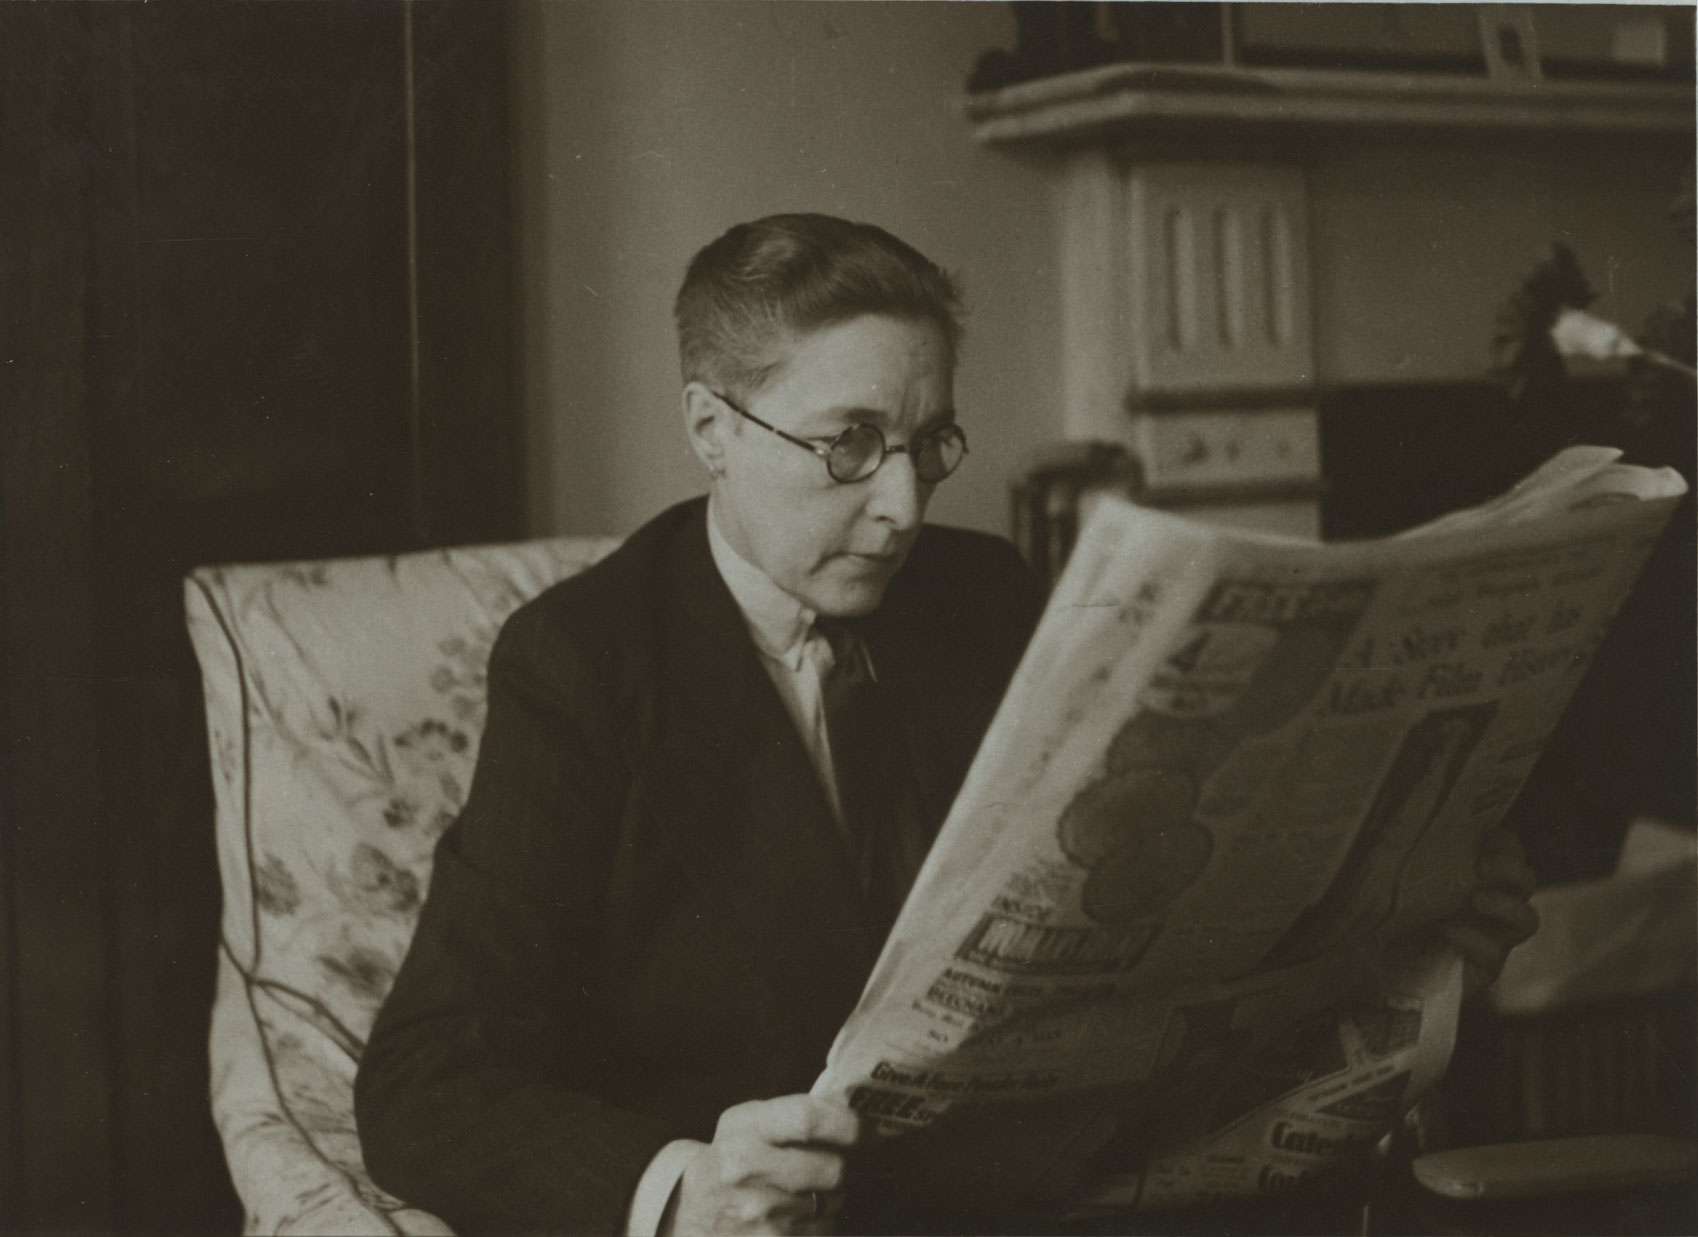 Radclyffe Hall reading a newspaper. From the Radclyffe Hall Literary File at the Harry Ransom Center. Undated.